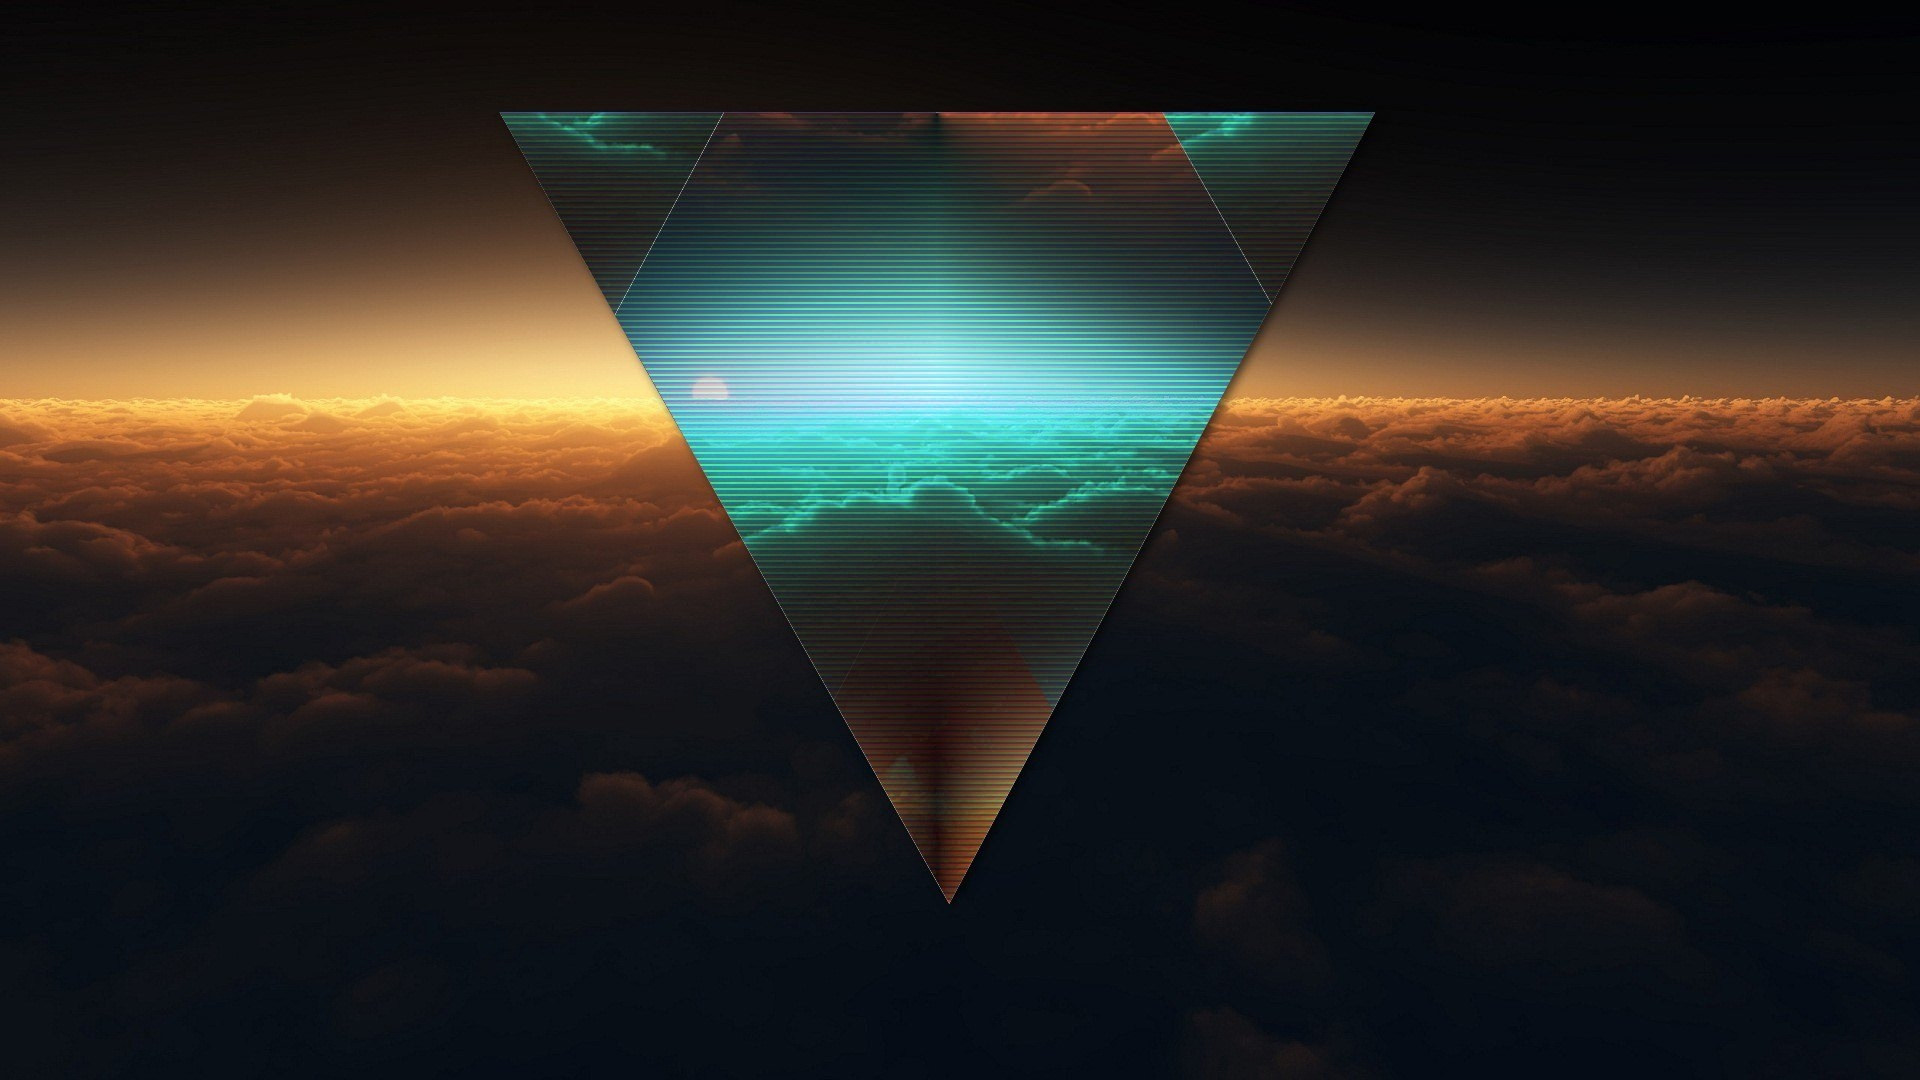 Abstract Triangle Dark Background